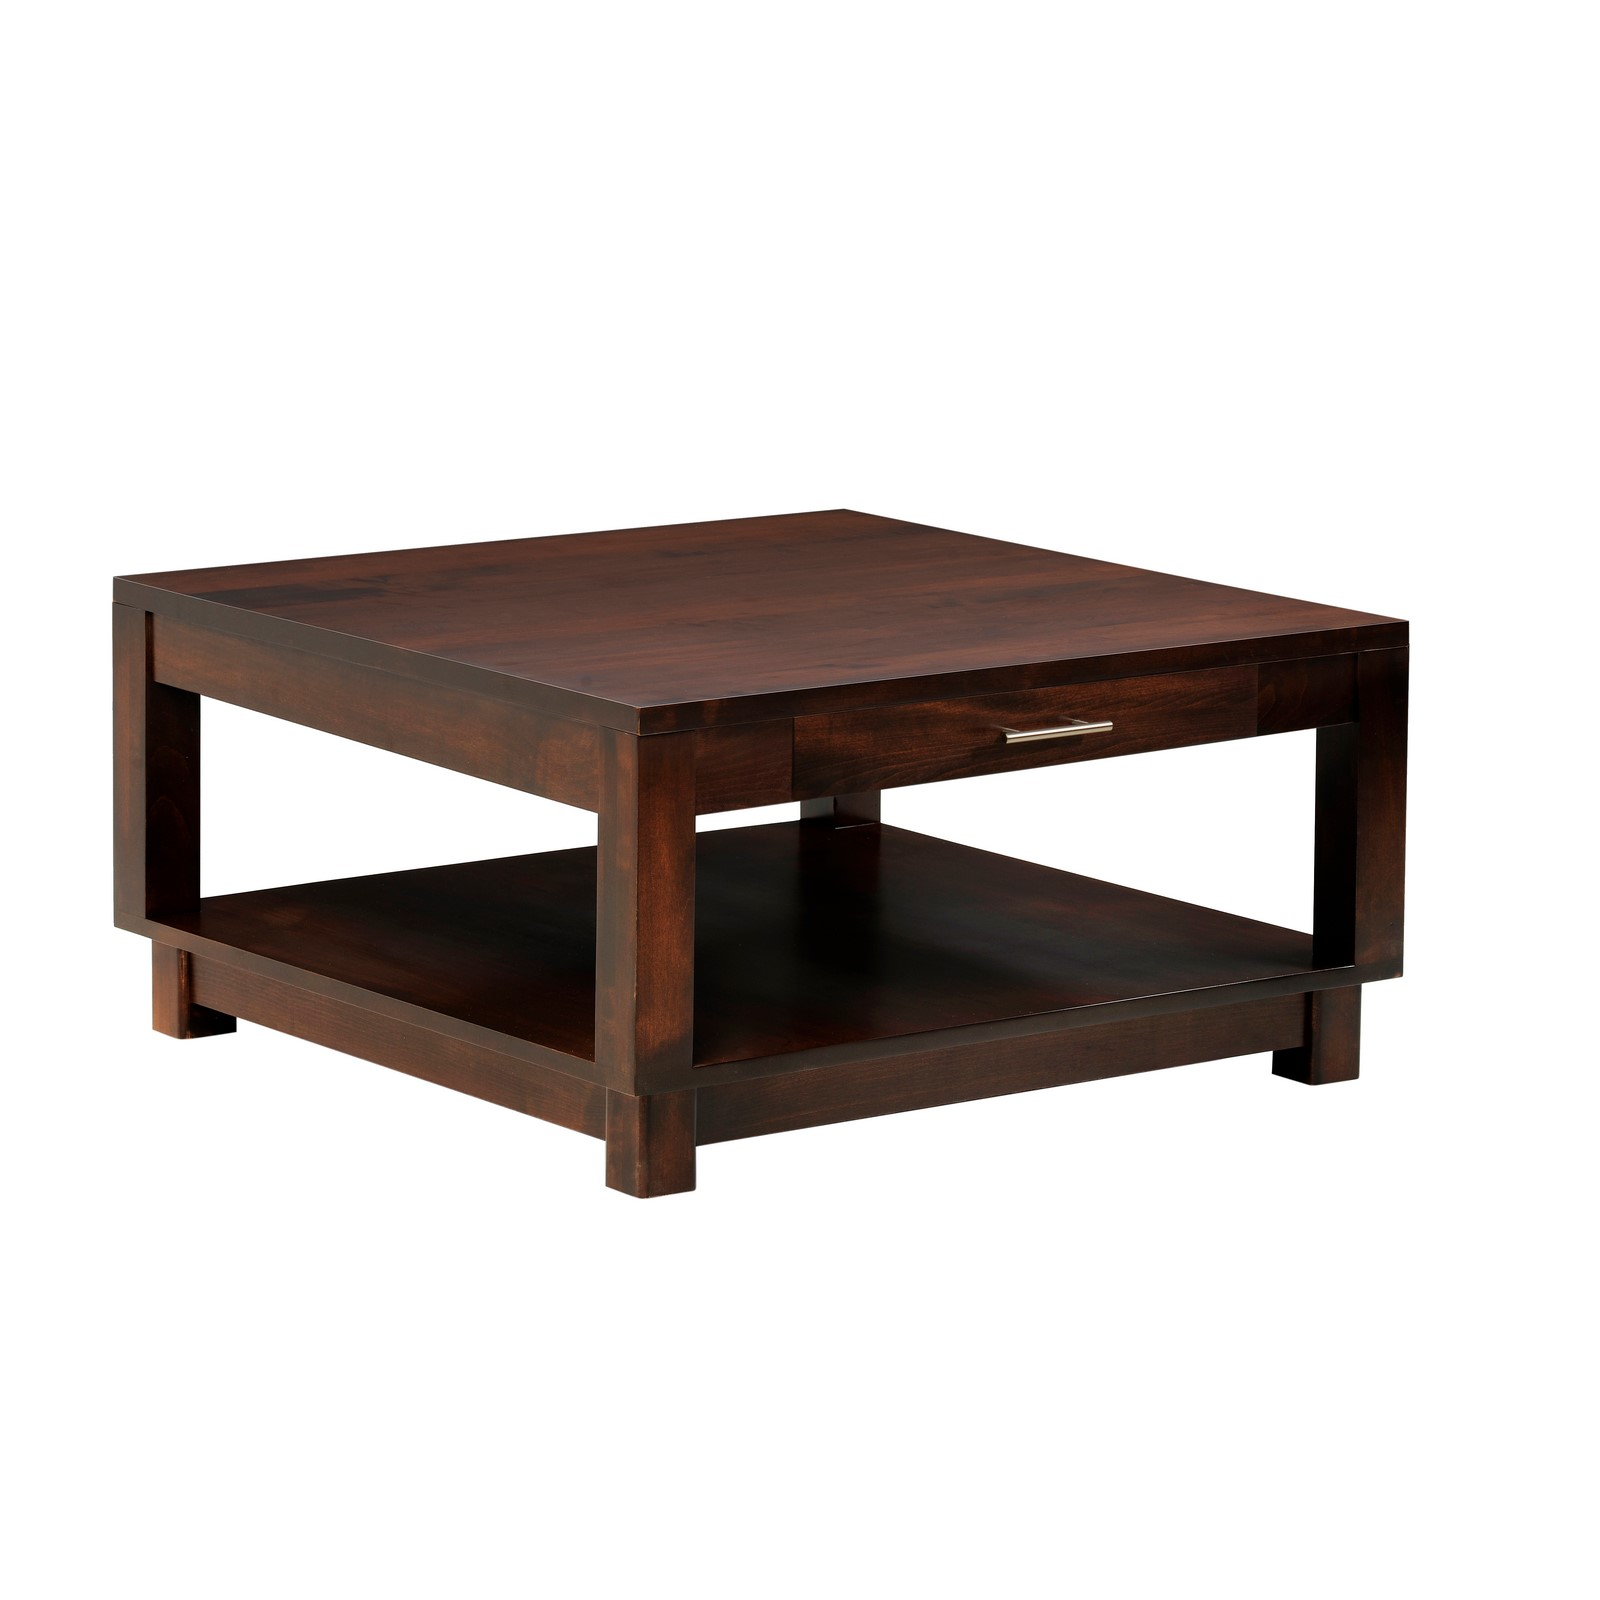 Y & T Urban Occasional Table